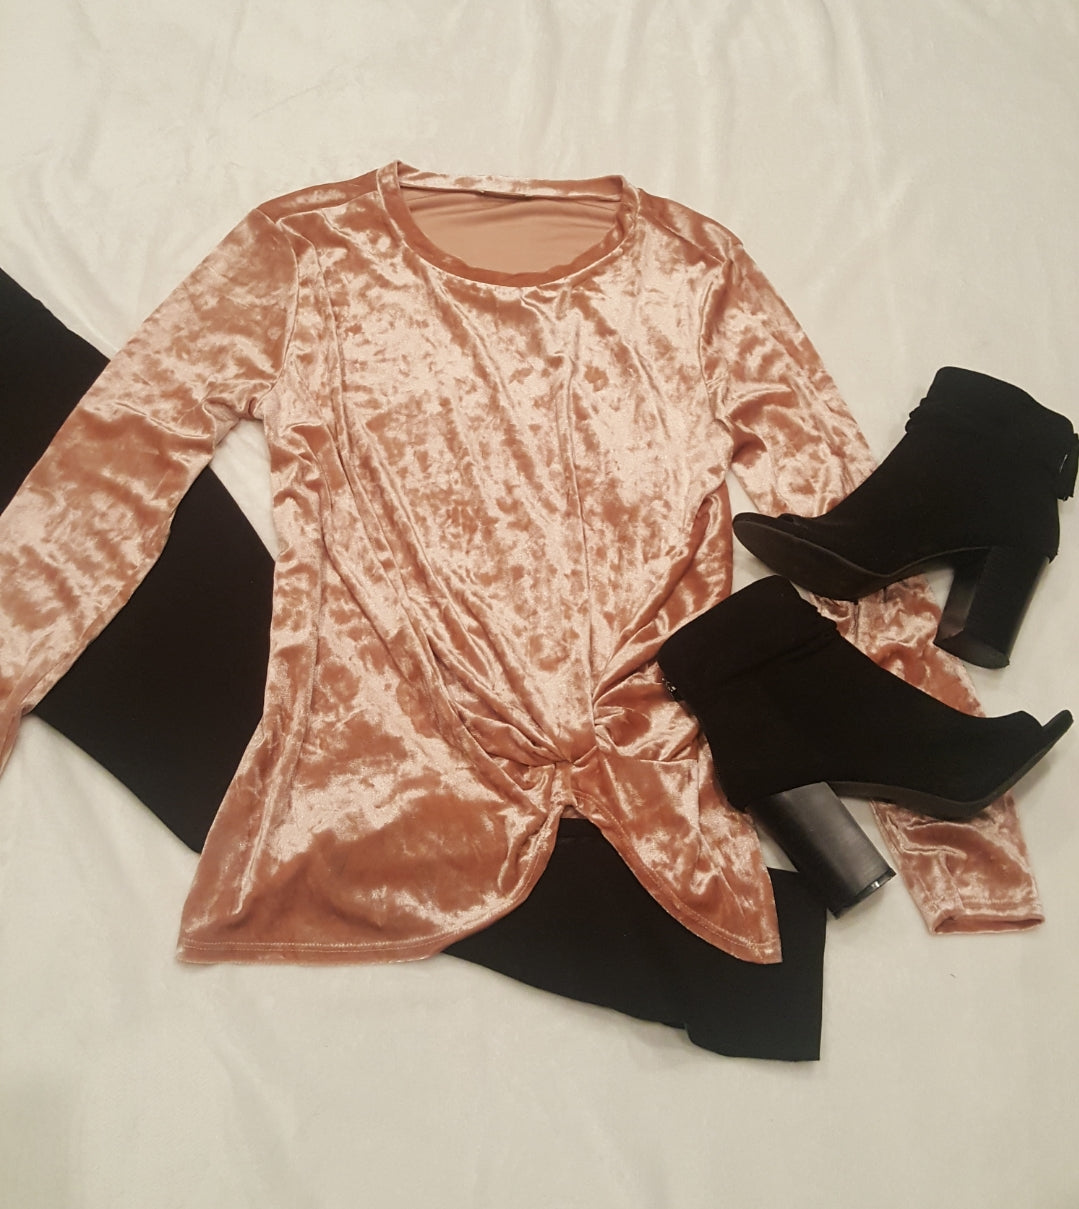 Crushed velvet top